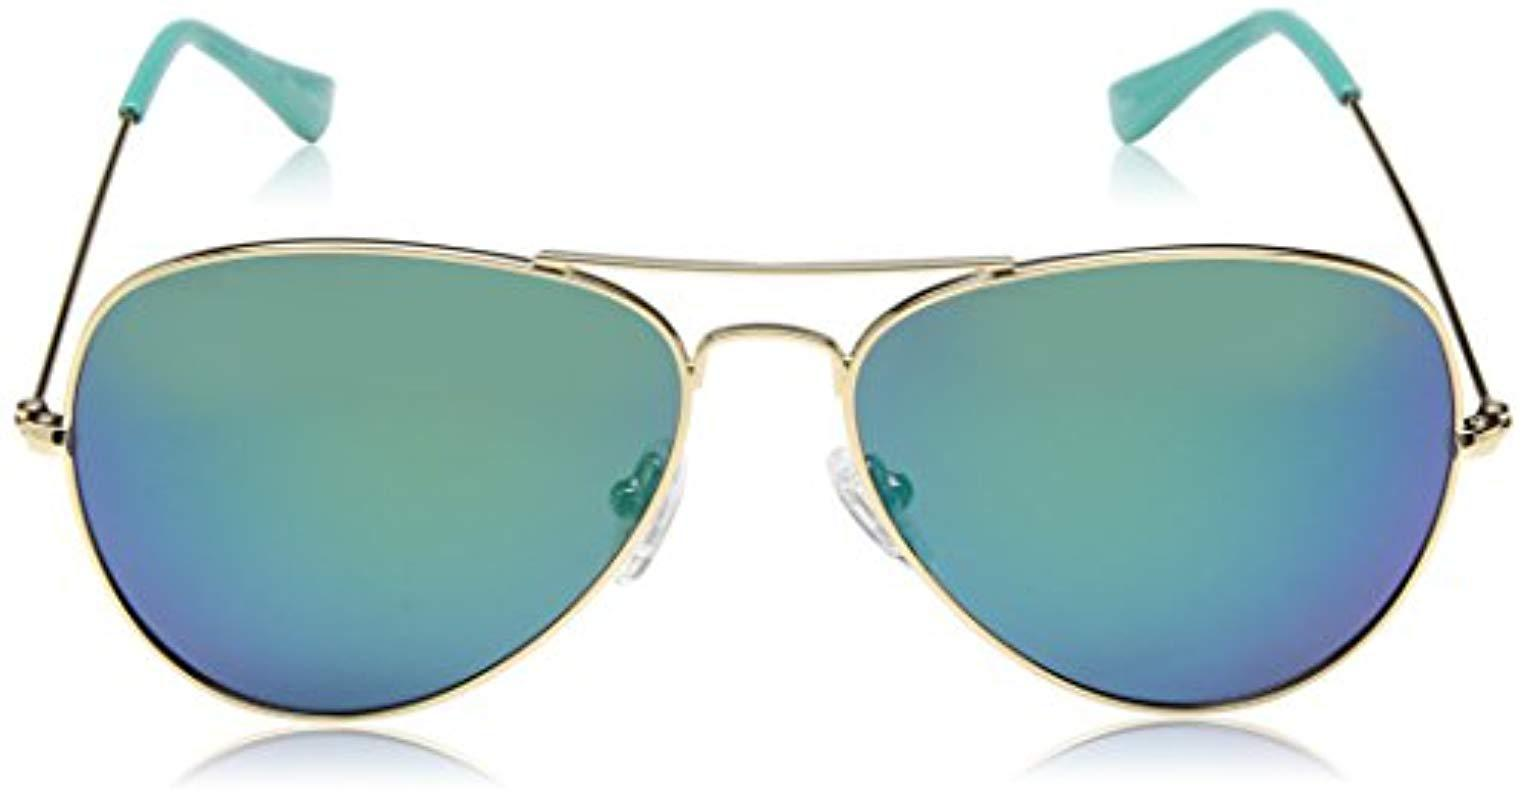 51137ad514a Lilly Pulitzer - Blue Lexy Lexysb59 Polarized Aviator Sunglasses - Lyst.  View fullscreen